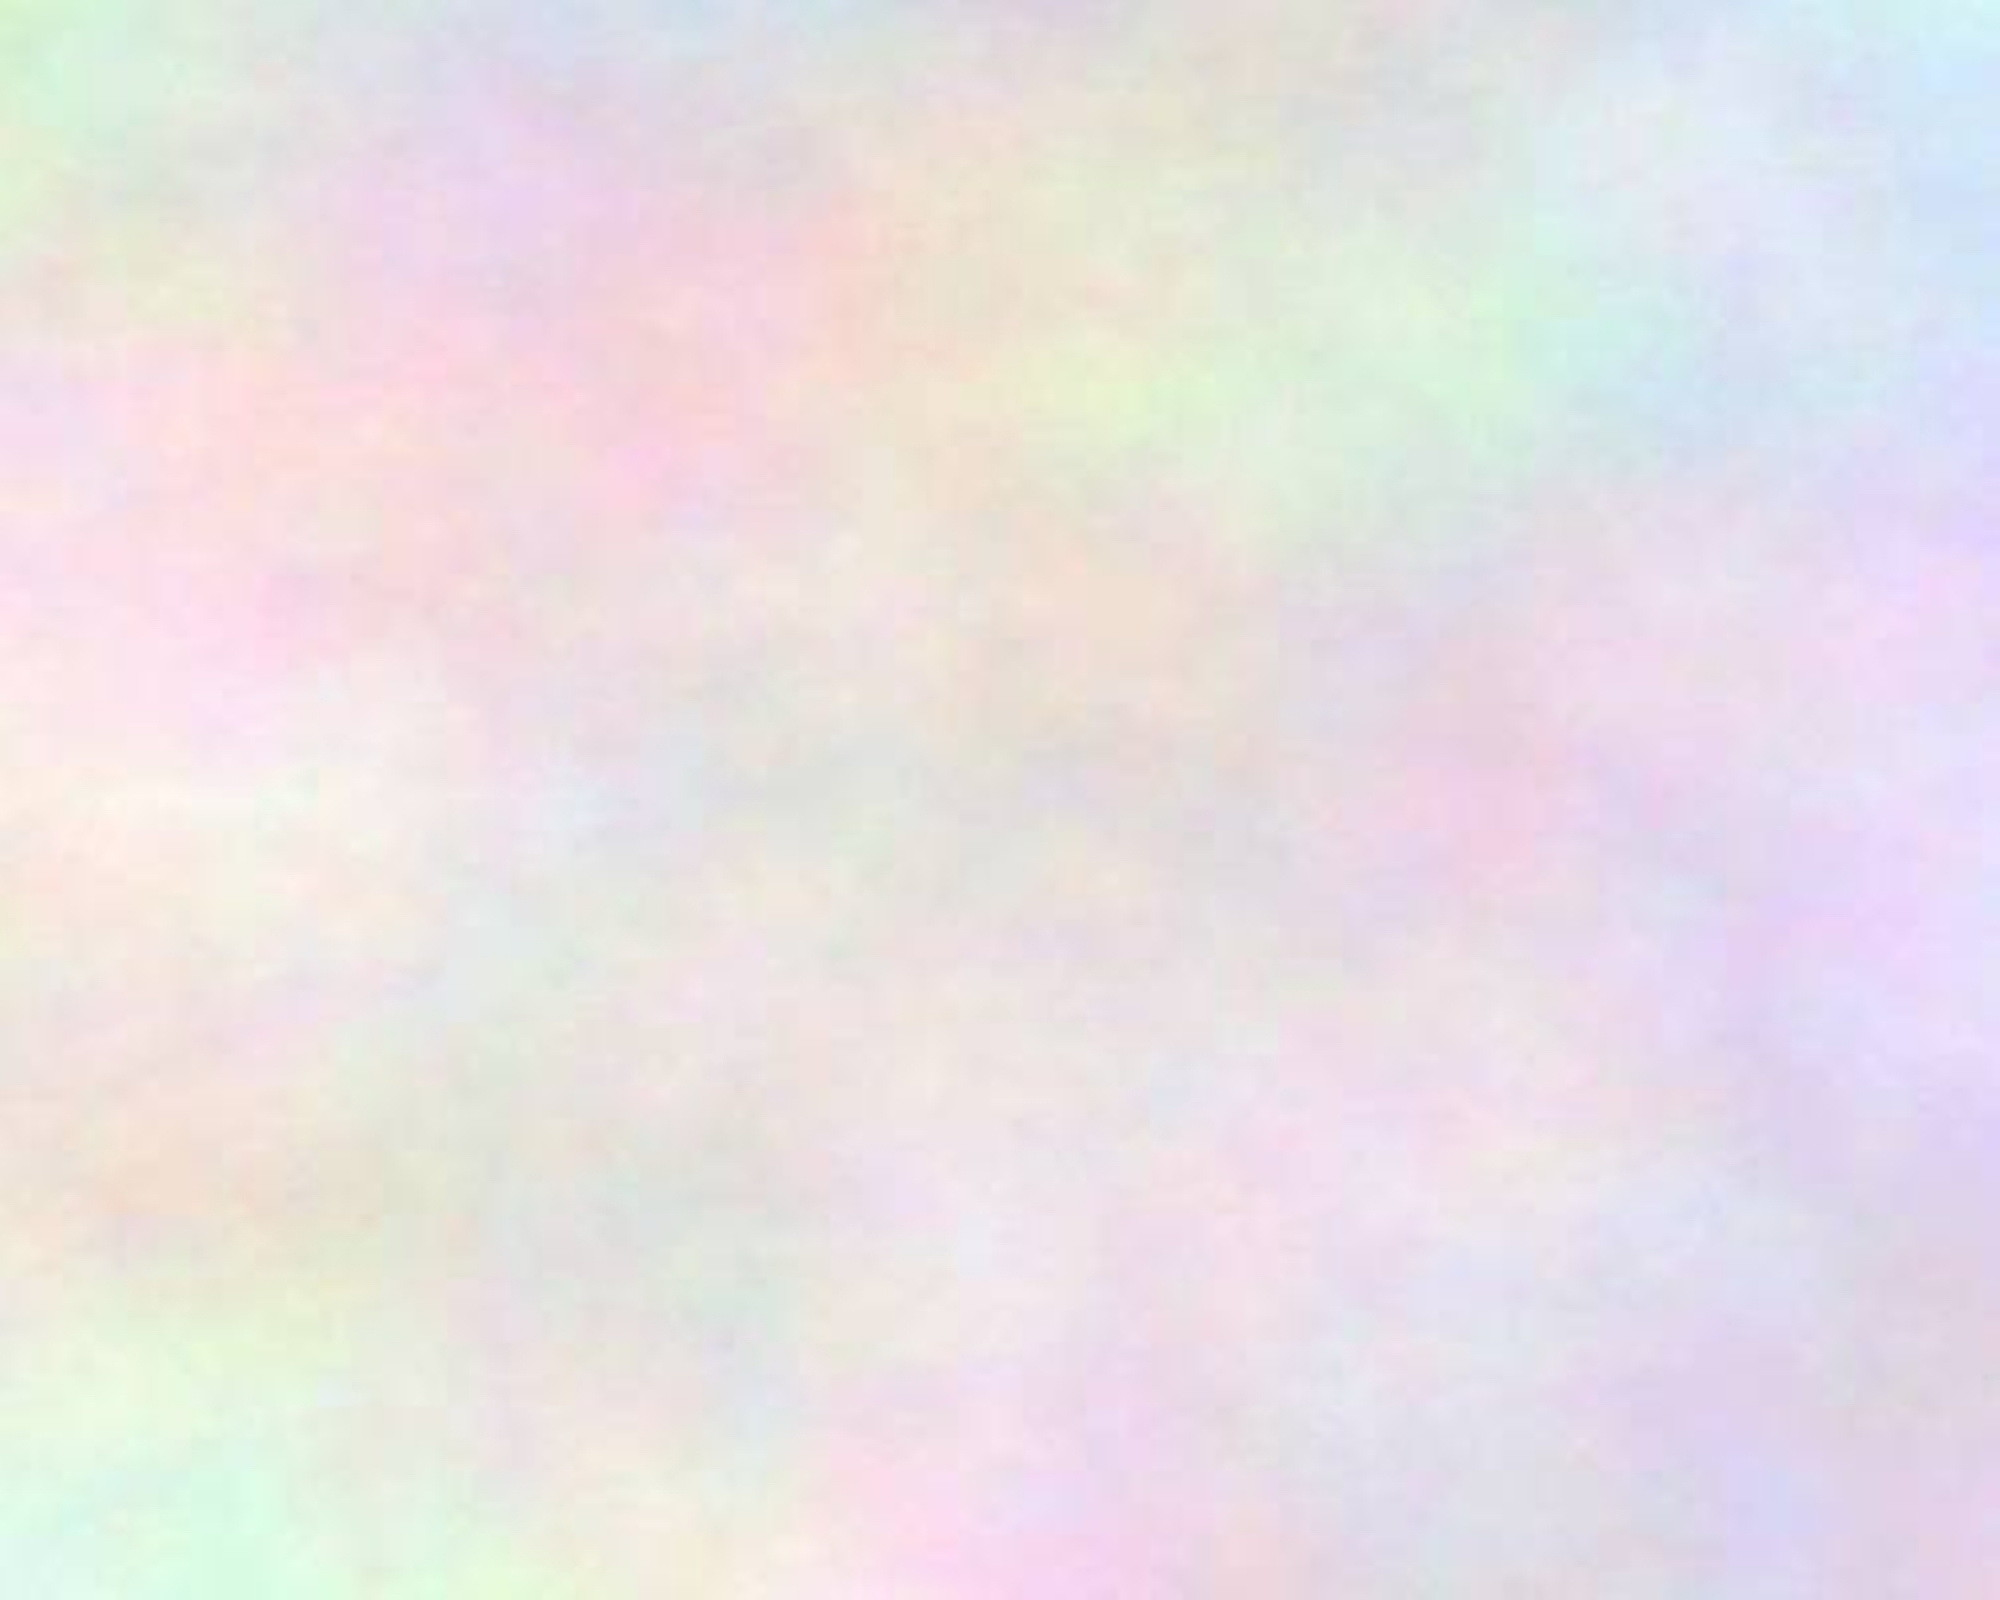 2560x1600 Wallpapers For Plain Pink Color